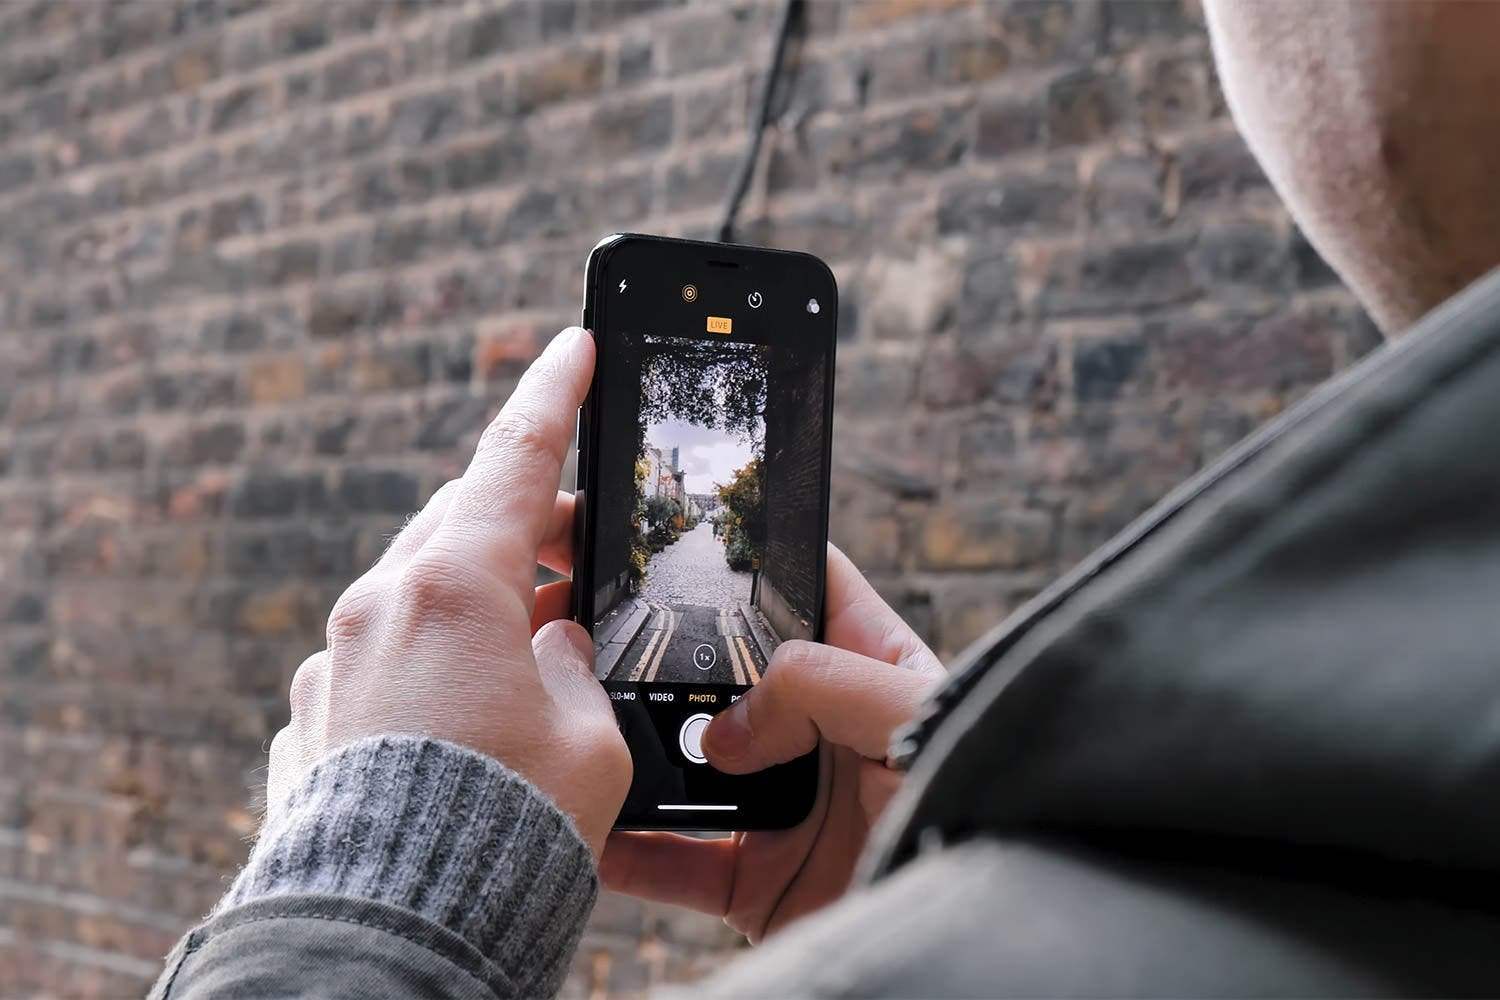 Phone Cameras Are Great, But Most Traditional Cameras Are Here to Stay